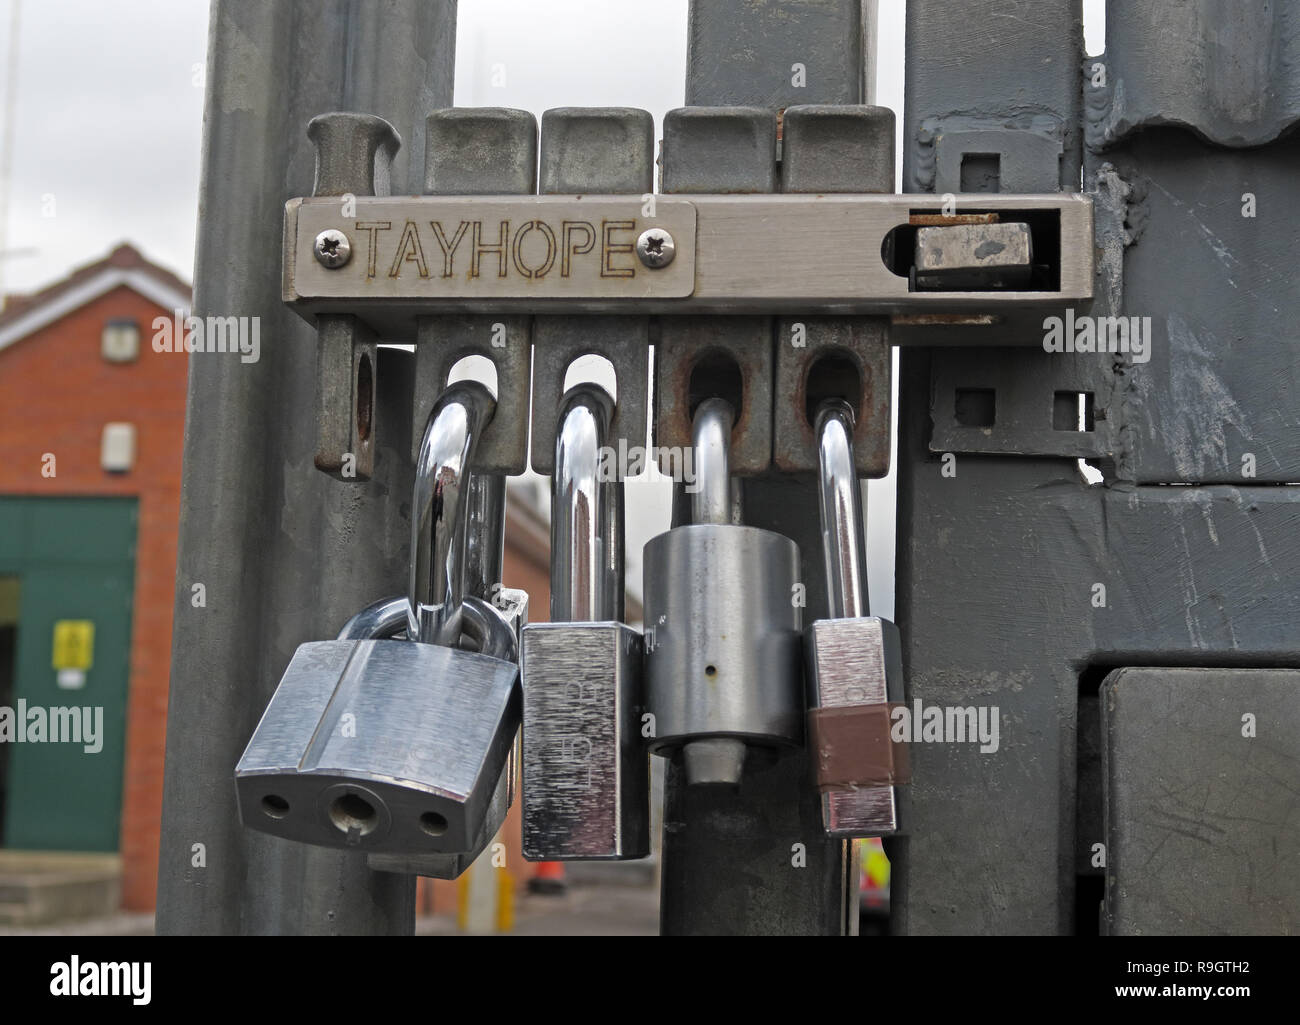 Secure gates, gate security using multiple locks and padlocks, Tayhope Multi-lock system, on a sub-station gate, Western Power distribution,Bridgwater - Stock Image